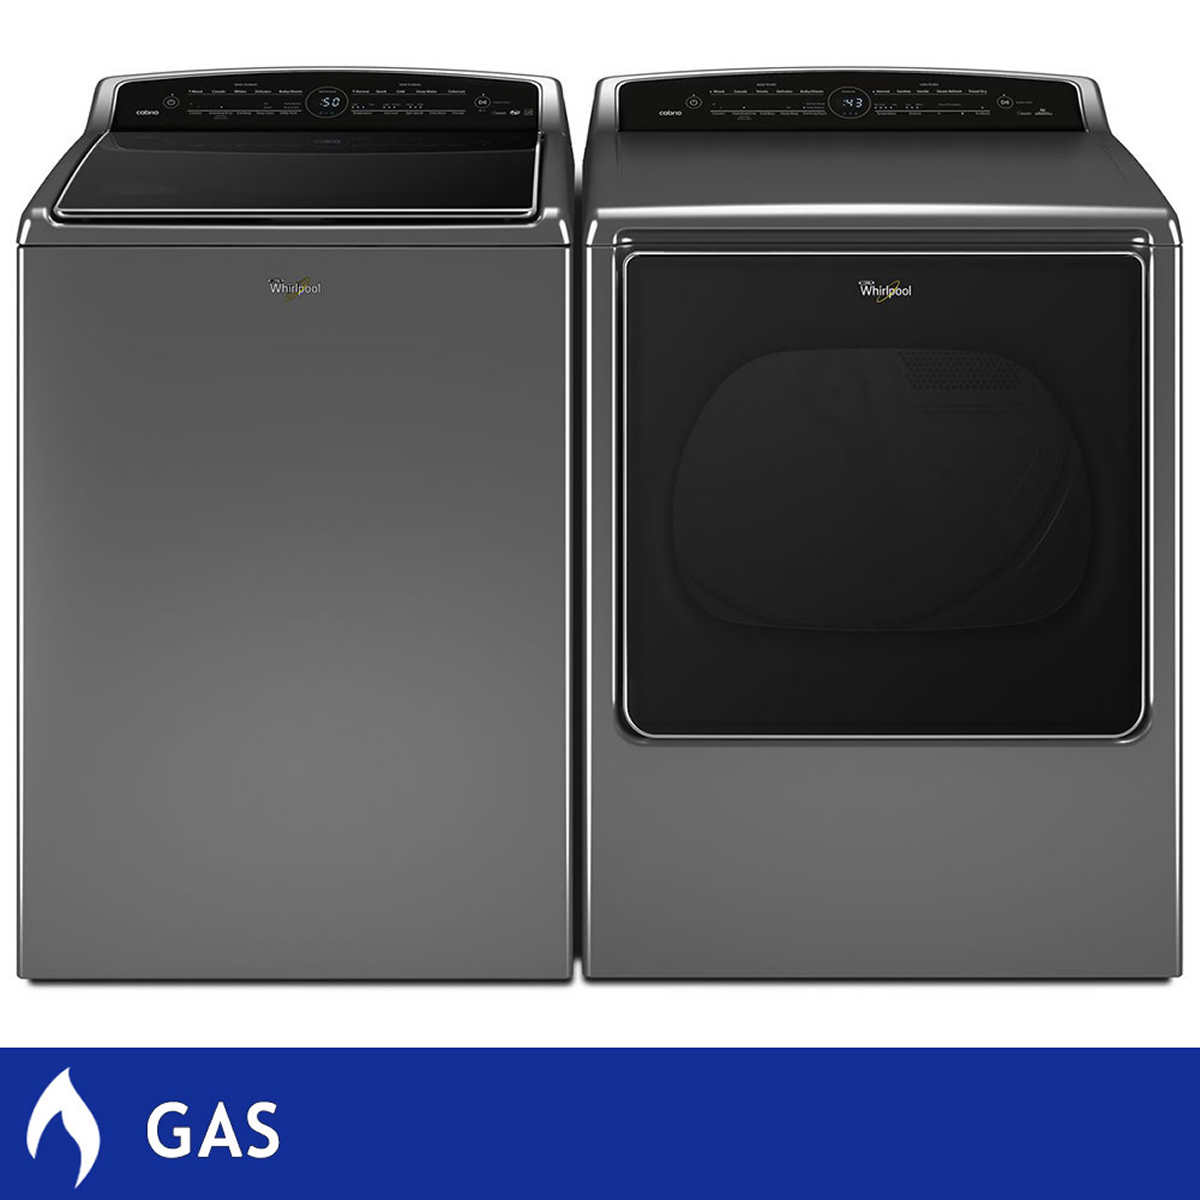 Whirlpool top load washer and dryer - Click To Zoom